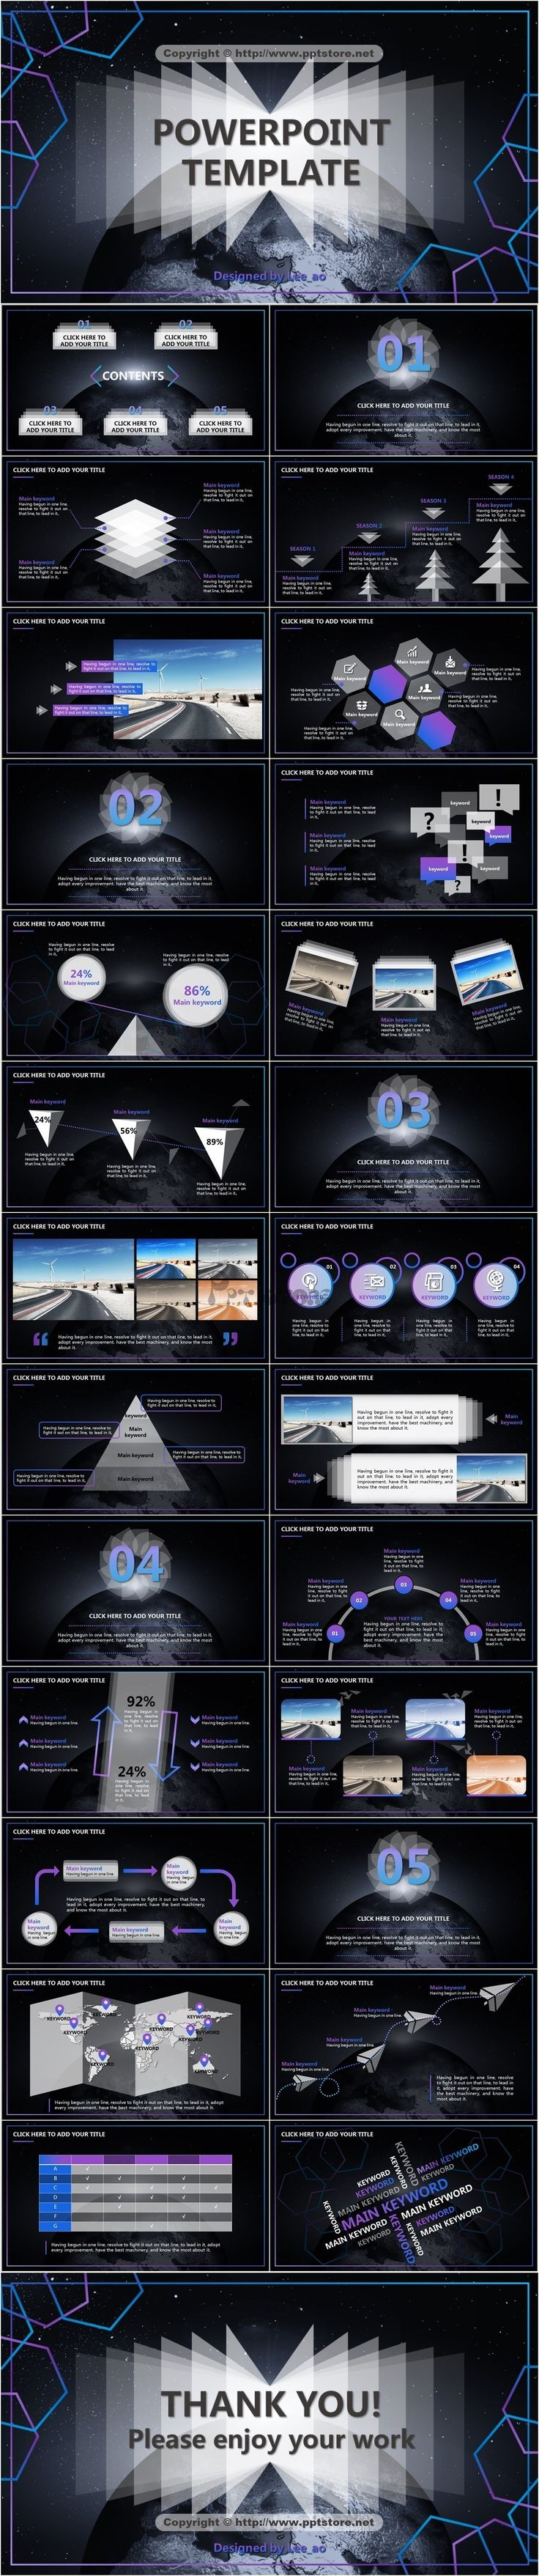 PowerPoint Template, download:http://www.pptstore.net/shangwu_ppt/12398.html